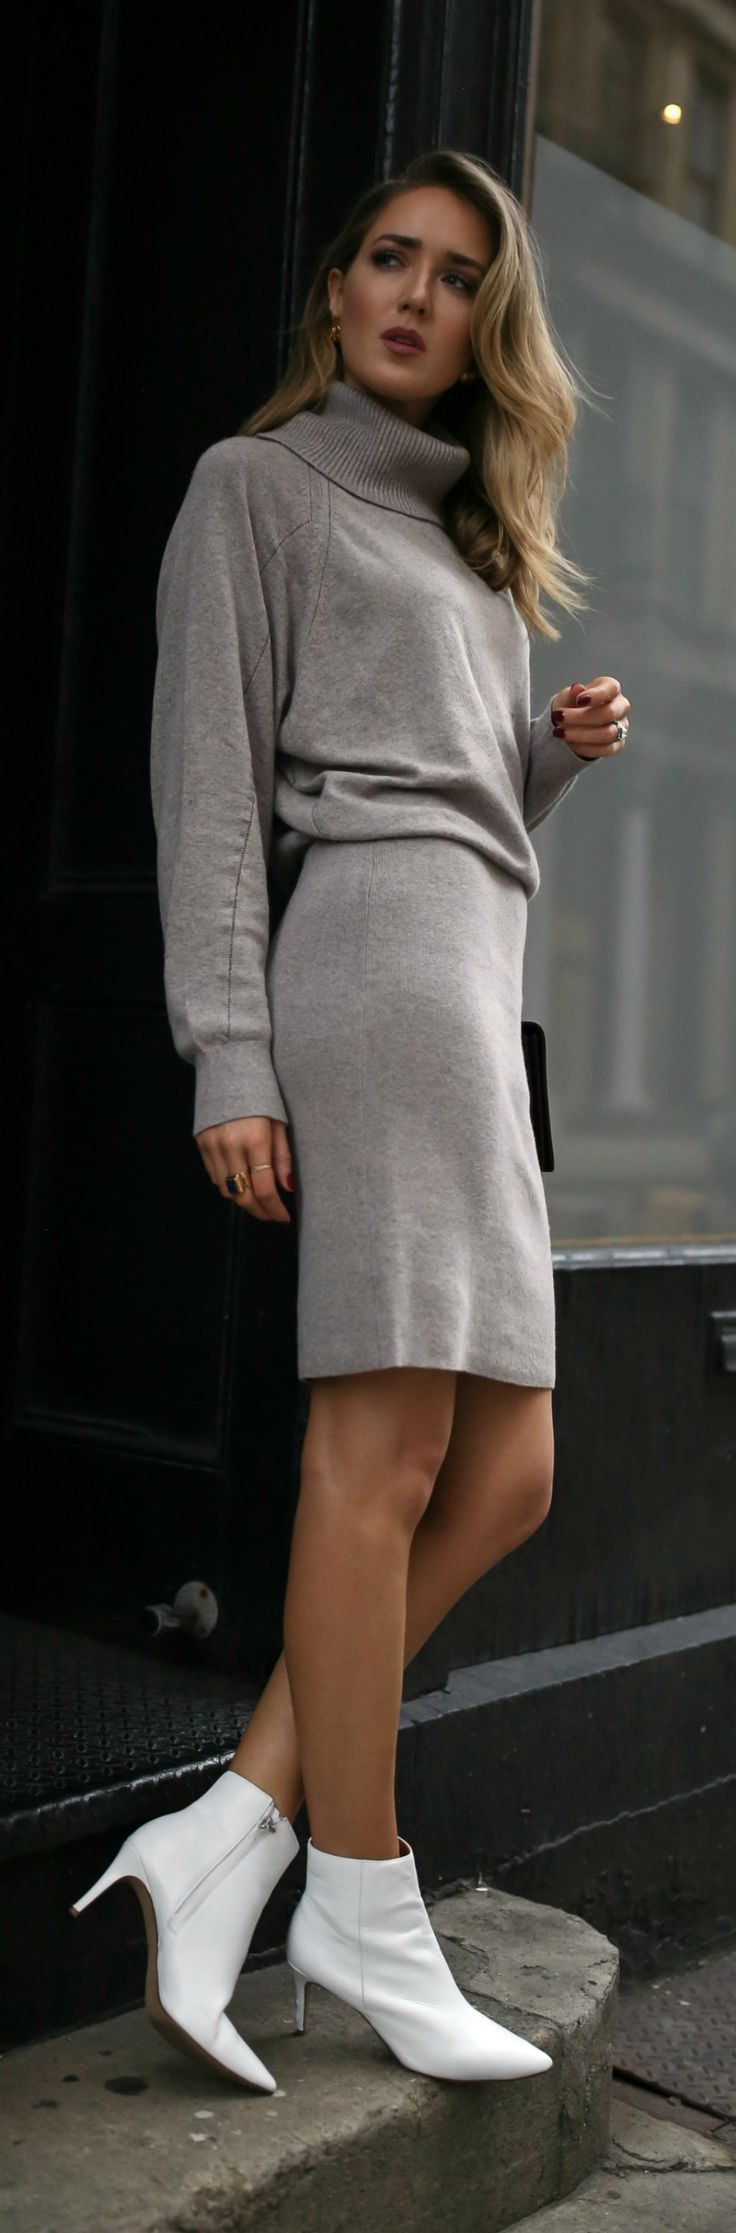 30 DRESSES IN 30 DAYS: Travel Day //  Grey long sleeve turtleneck sweater dress, white leather booties, black leather crossbody bag {Reiss, YSL, Halogen, what to wear to travel, fall style, sweater dress, street style, fashion blogger, classic dressing}